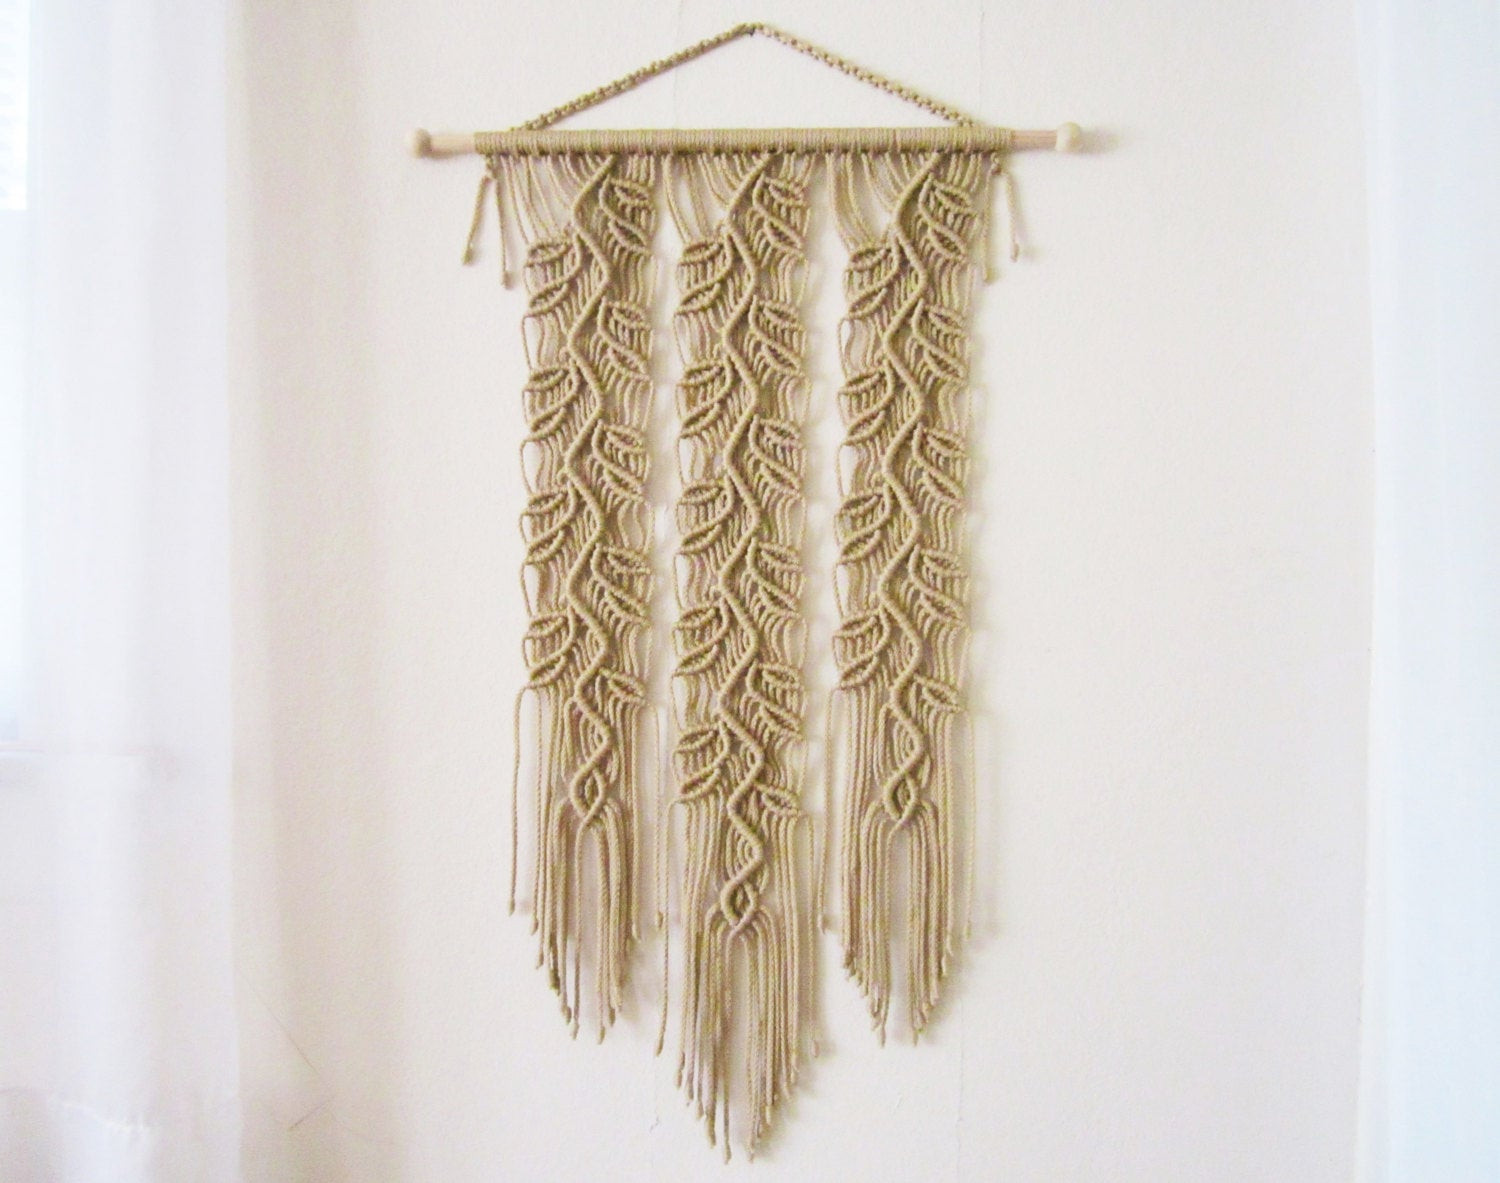 Handmade Wall Decor Macrame Wall Hanging Sprigs 4 Handmade Macrame Home Decor